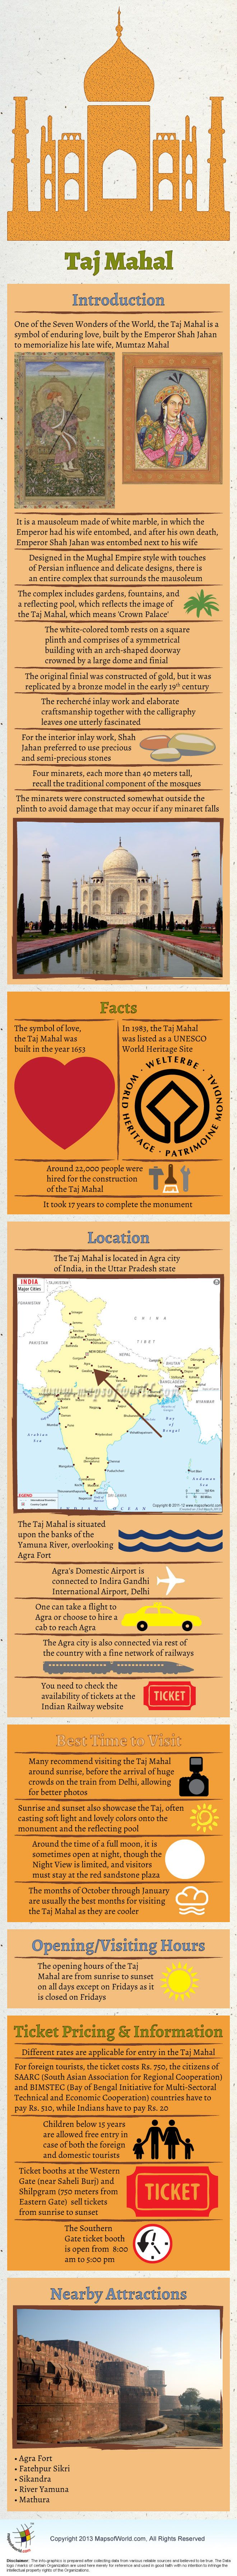 Taj Mahal #Infographic: The symbol of #love, the Taj Mahal was built in the year 1653. Read more: http://www.mapsofworld.com/travel/destinations/india/taj-mahal#ixzz2rmy1lRpc